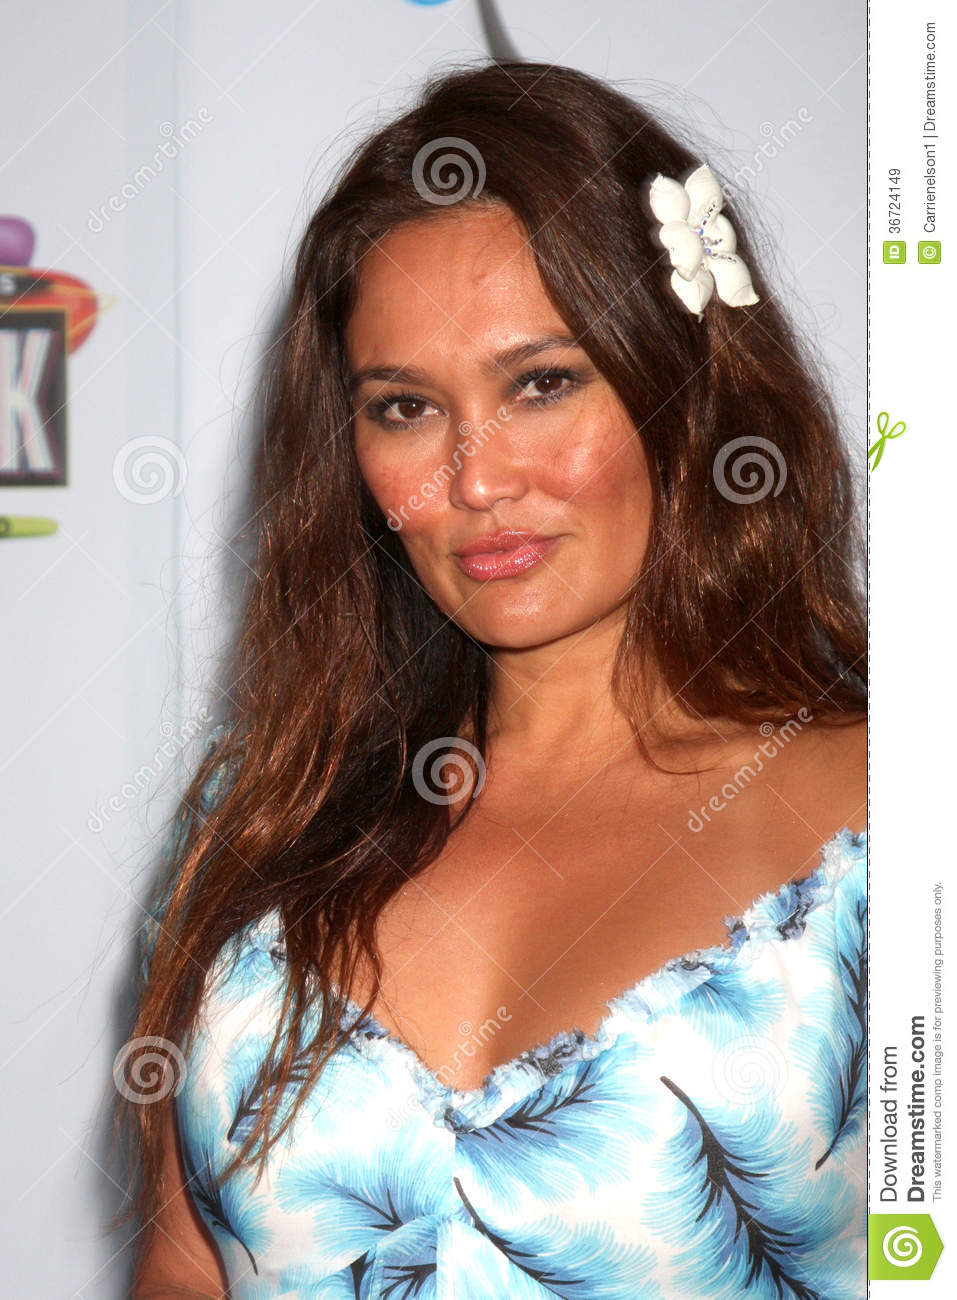 Instagram Tia Carrere nude (83 photos), Topless, Leaked, Twitter, braless 2019